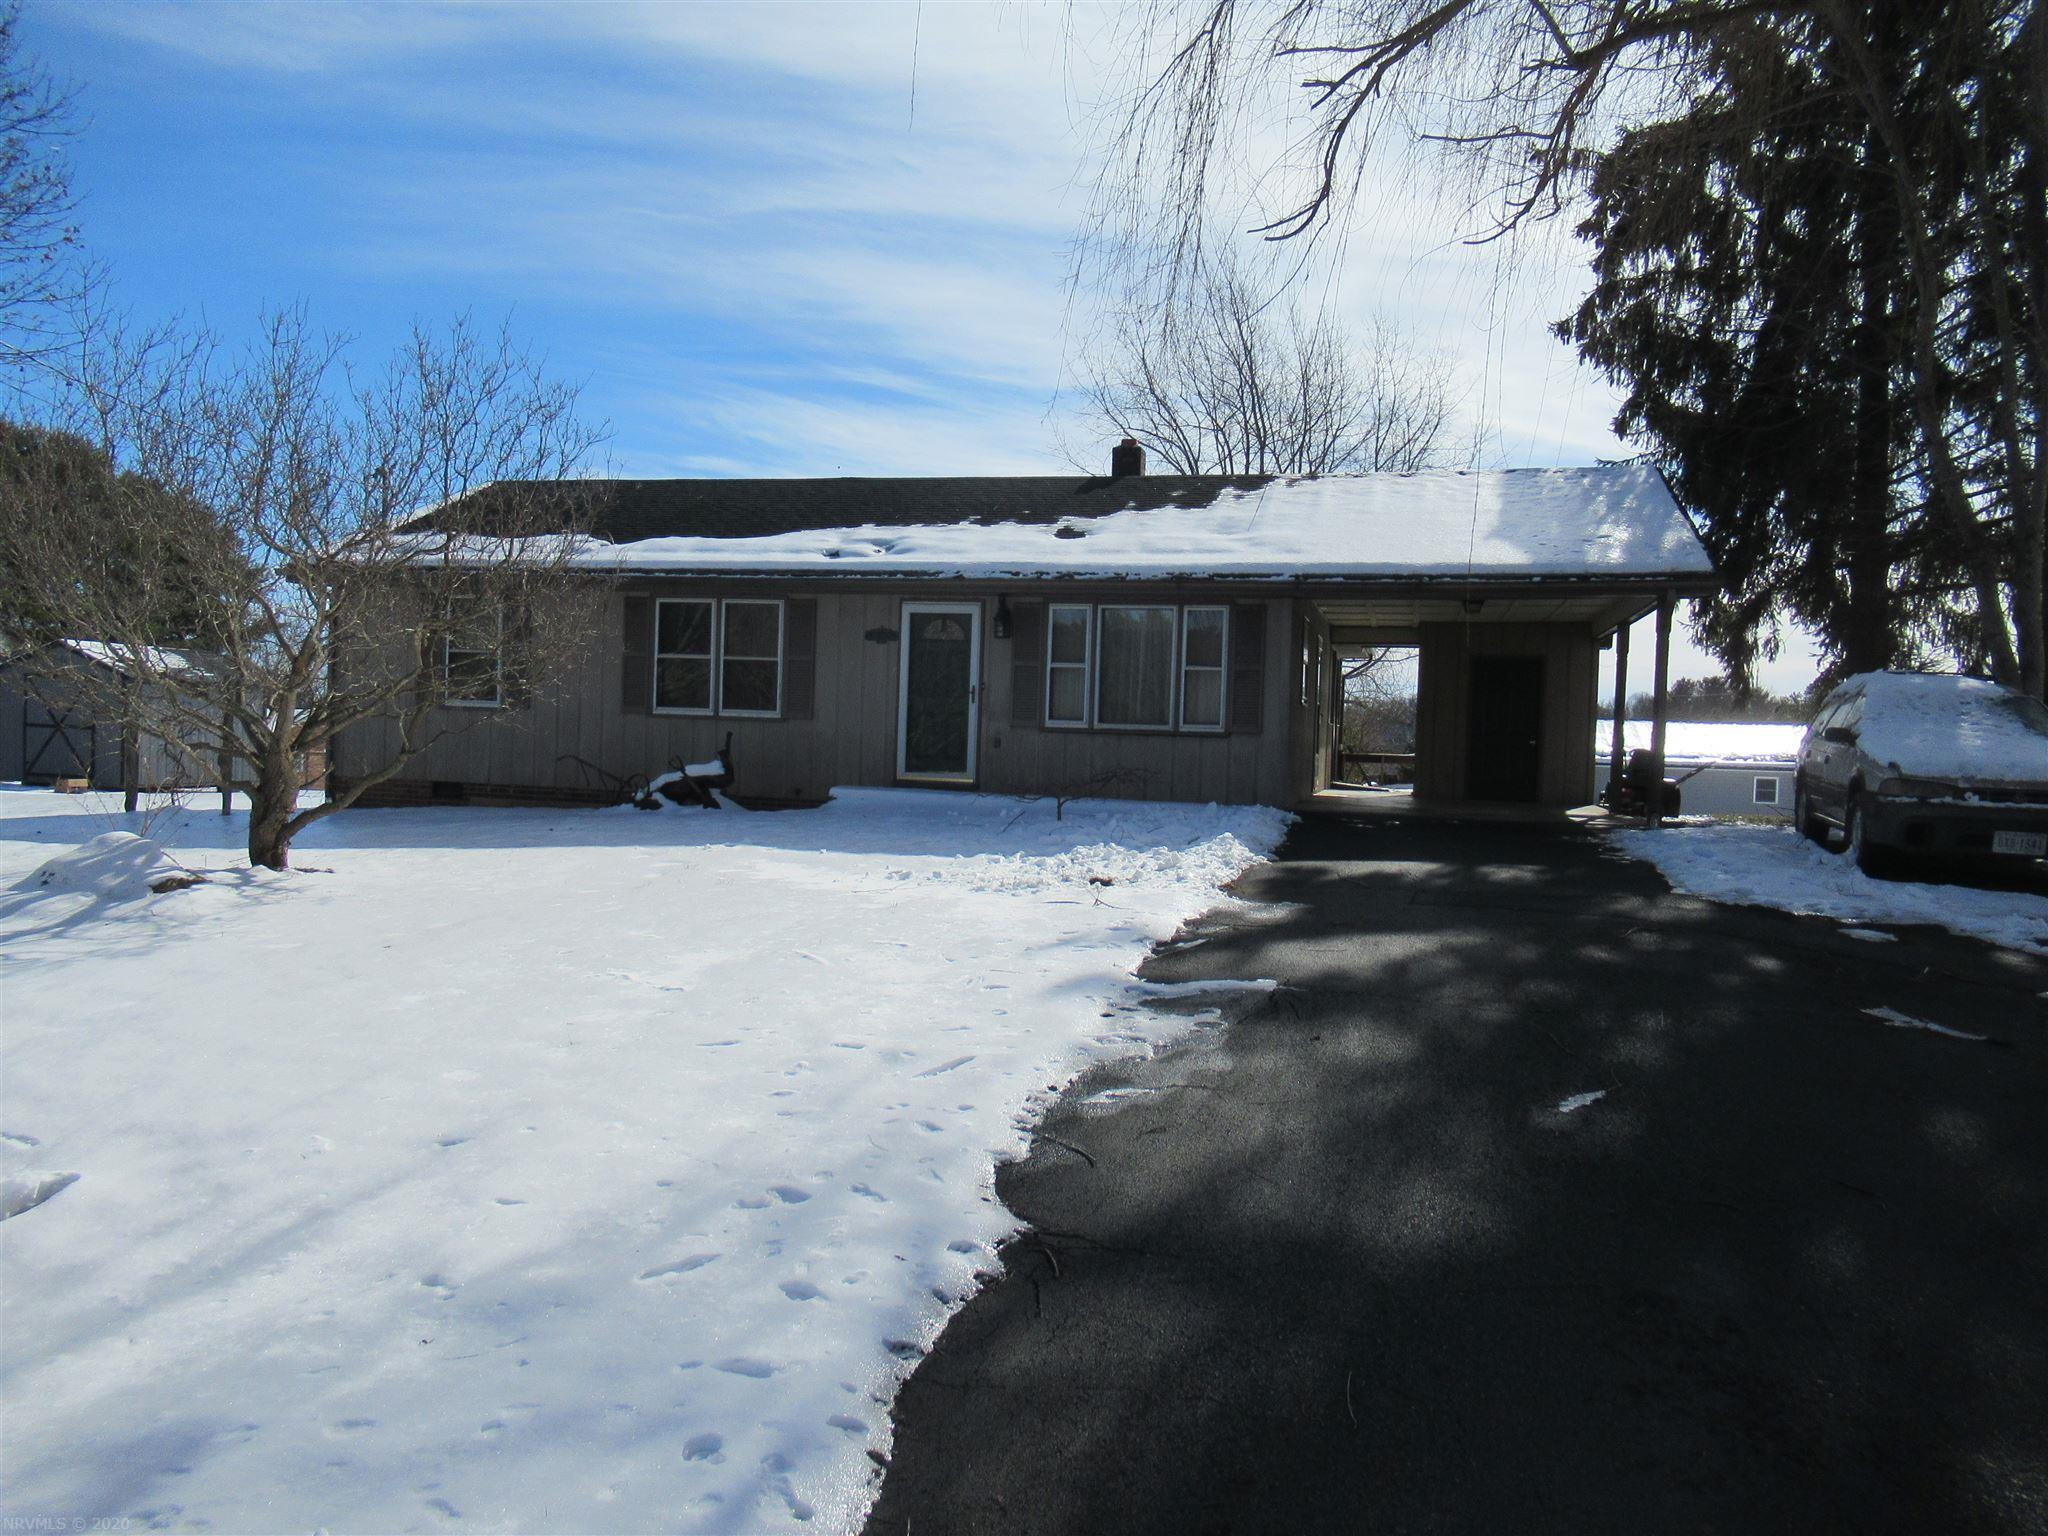 Great location, carport with storage, large enclosed rear porch, nice level lot, home needs a little TLC